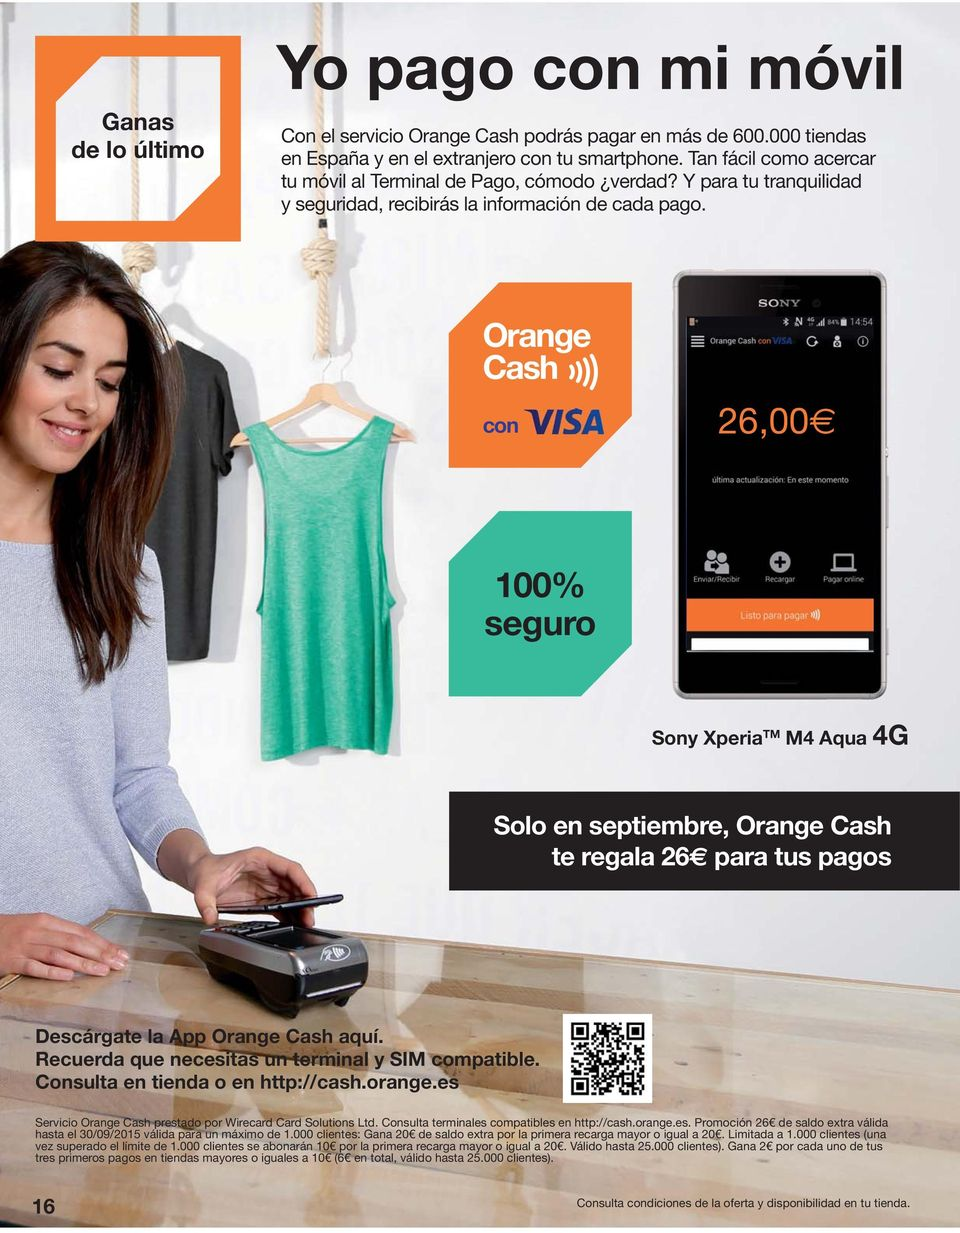 Orange Cash con 26,00 100% seguro Sony Xperia TM M4 Aqua 4G Solo en septiembre, Orange Cash te regala 26 para tus pagos Descárgate la App Orange Cash aquí.